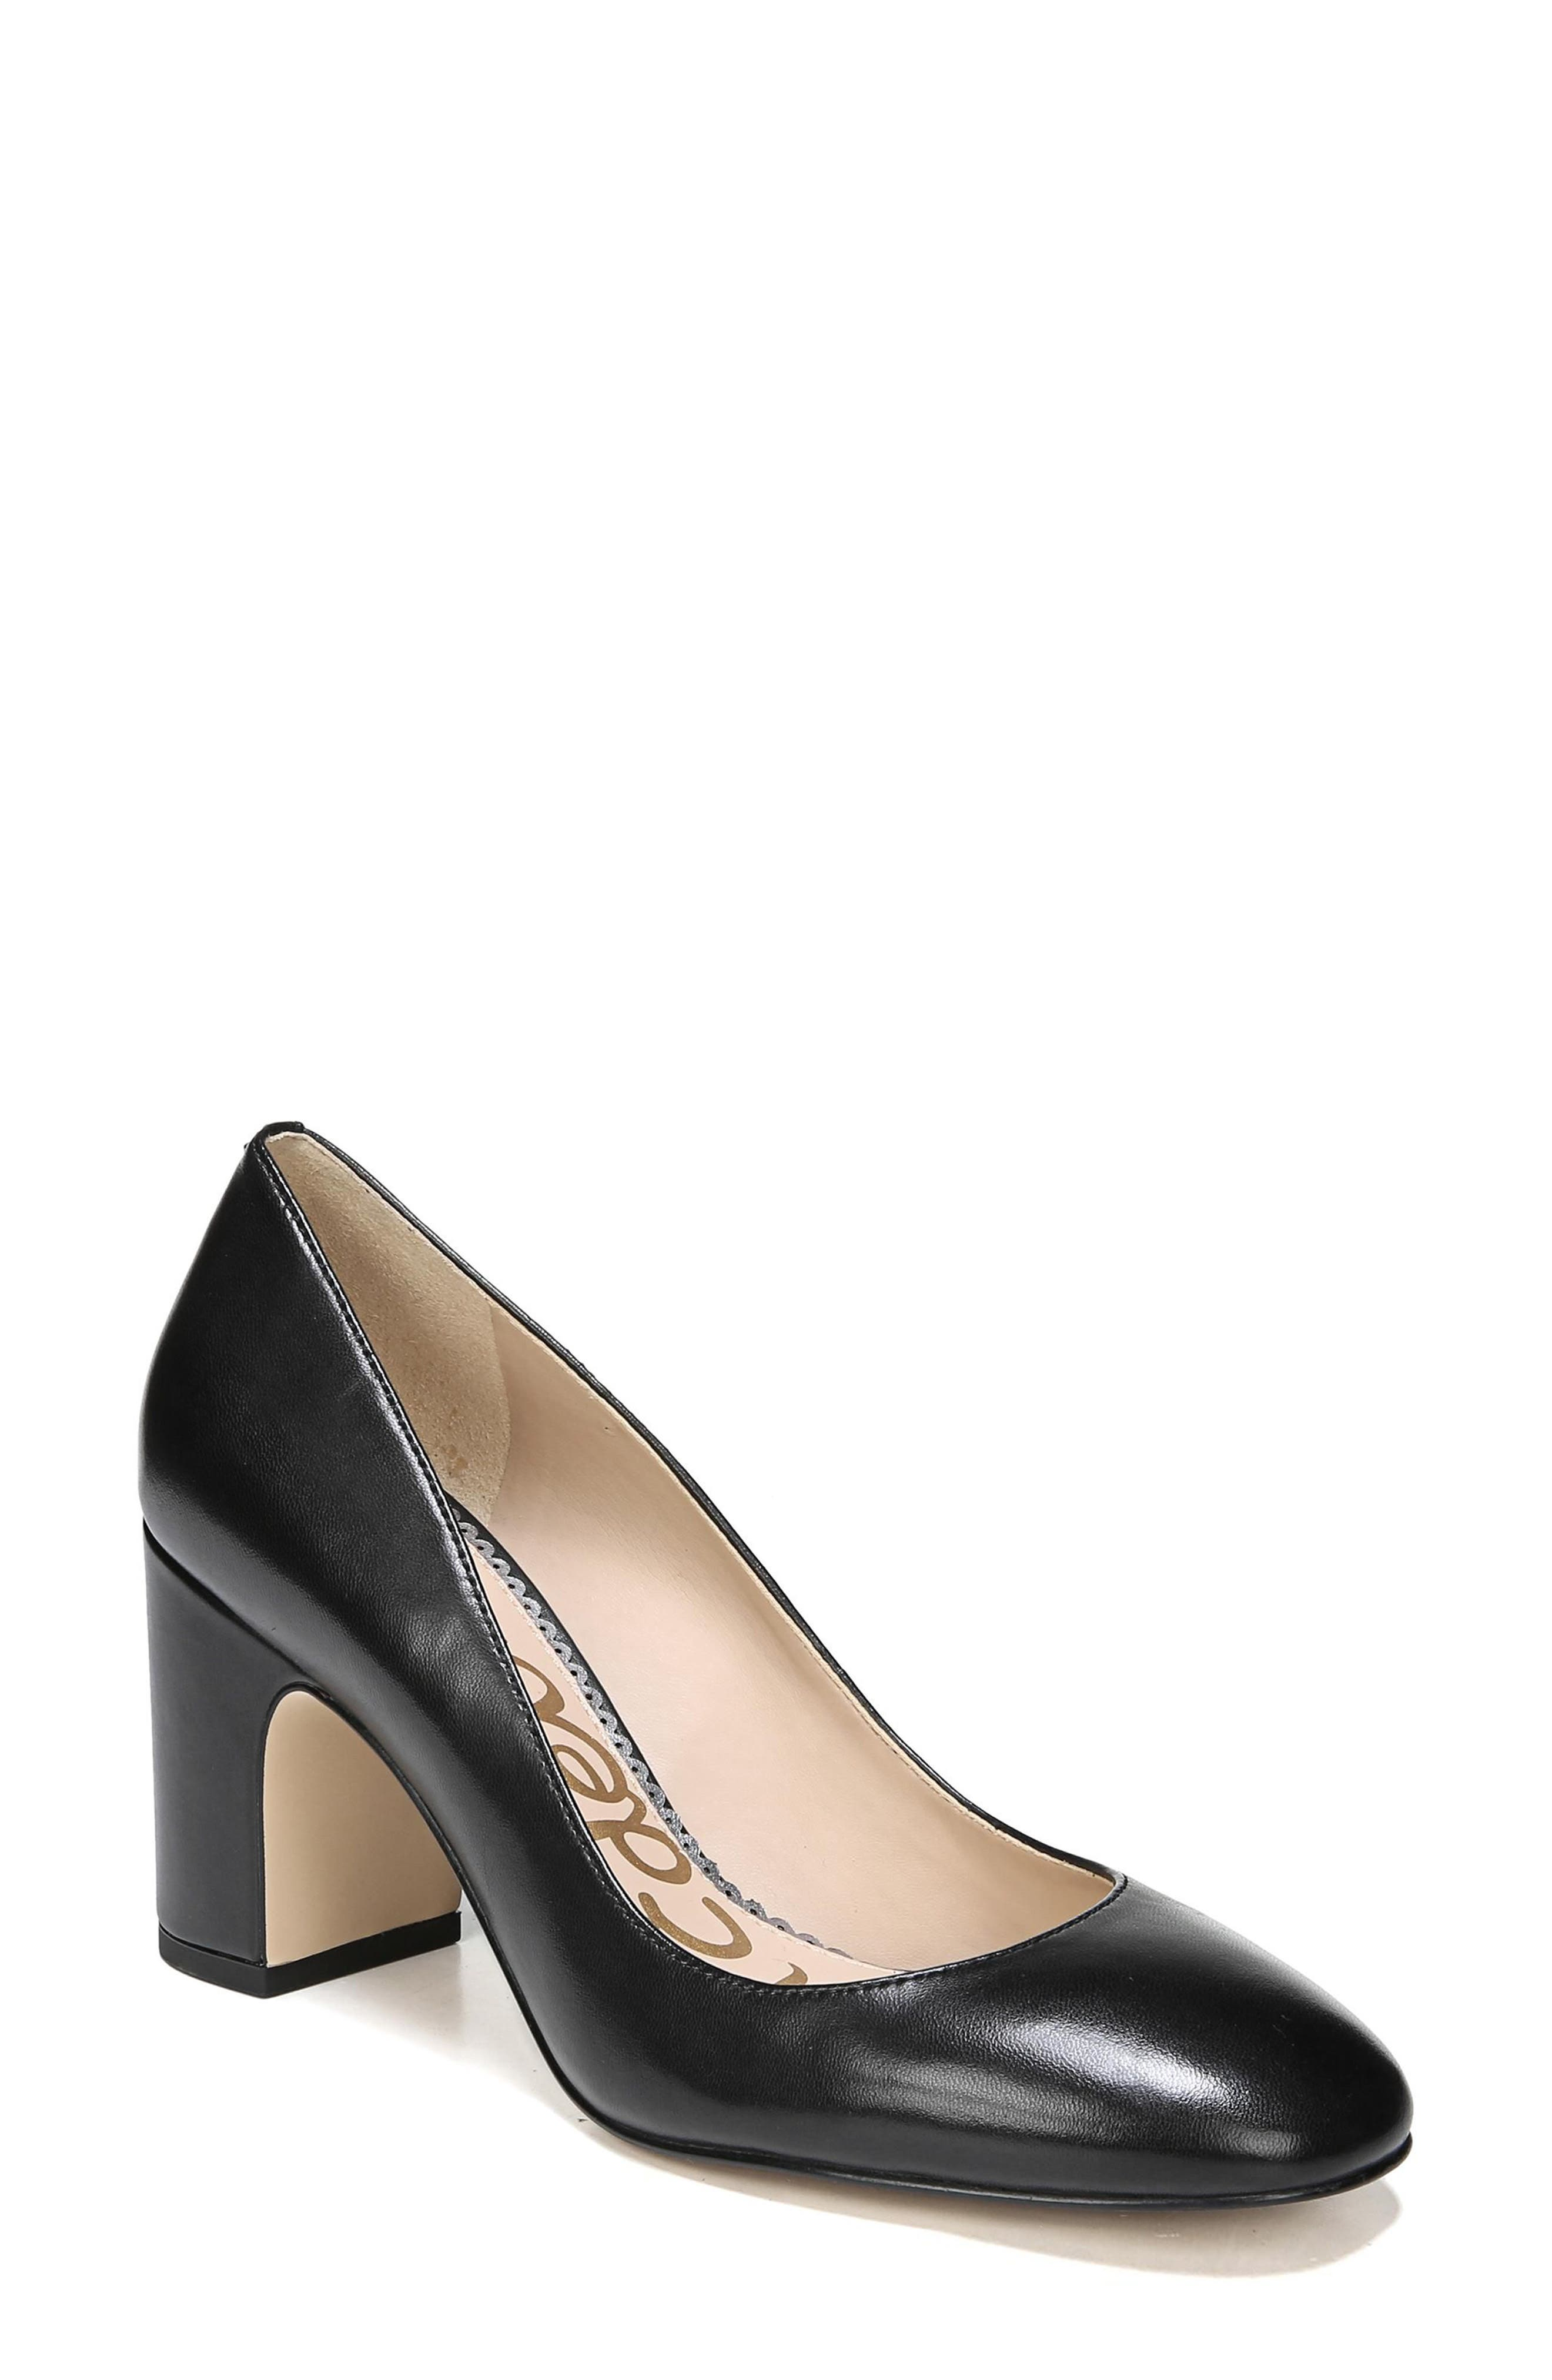 Main Image - Sam Edelman Junie Pump (Women)